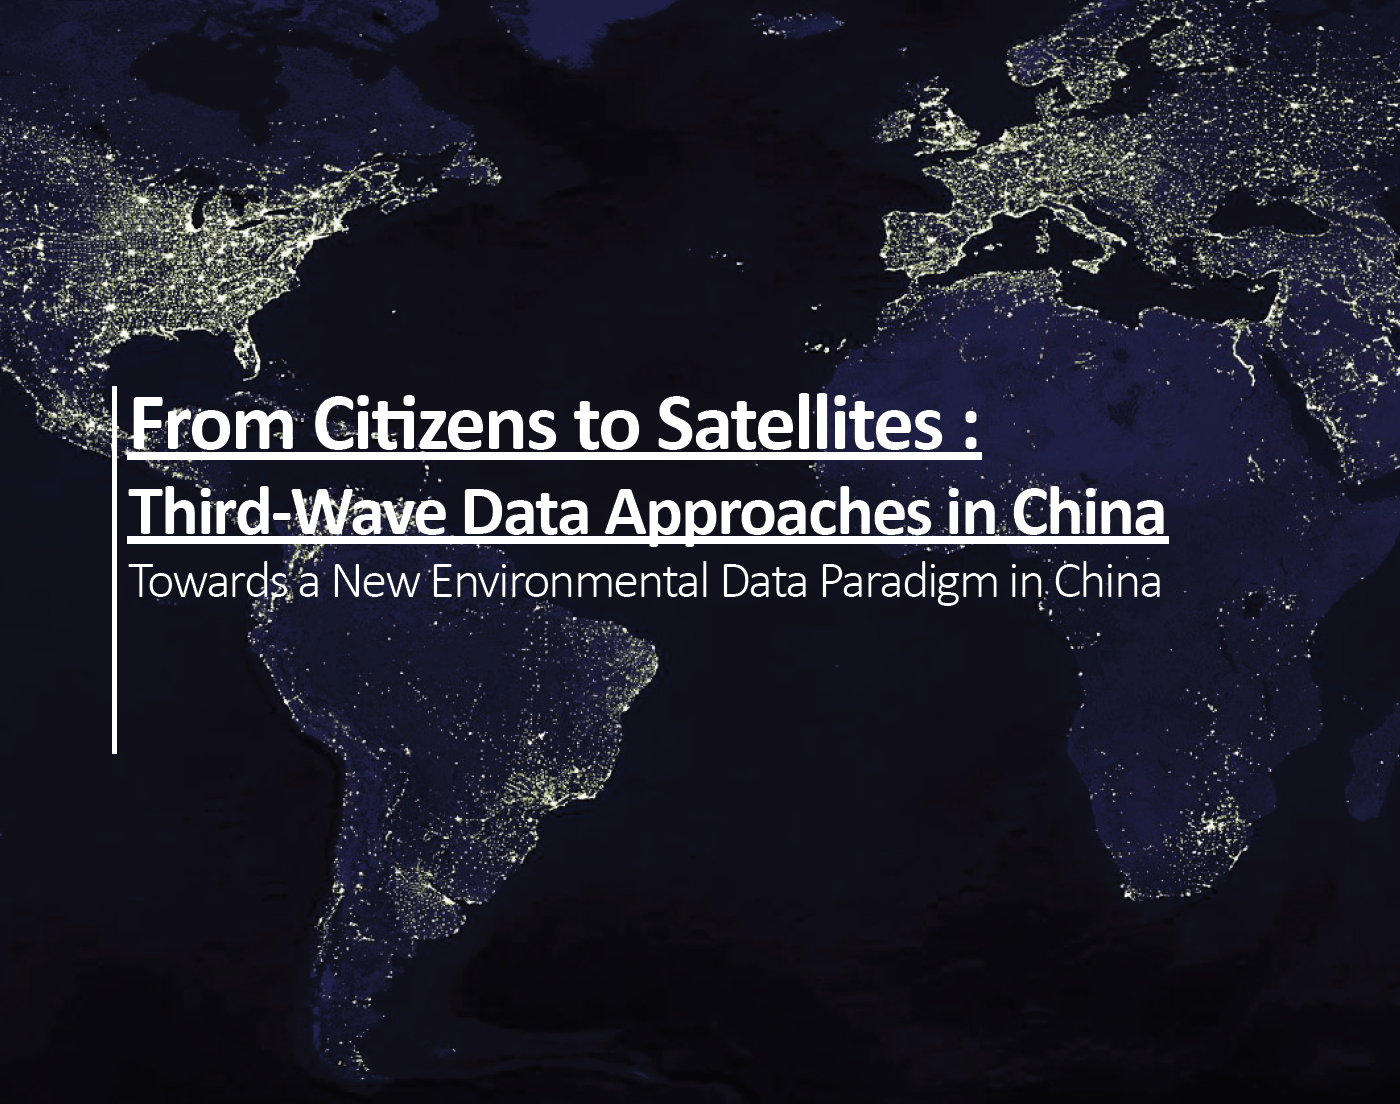 From Citizens to Satellites: Third-Wave Data Approaches in China